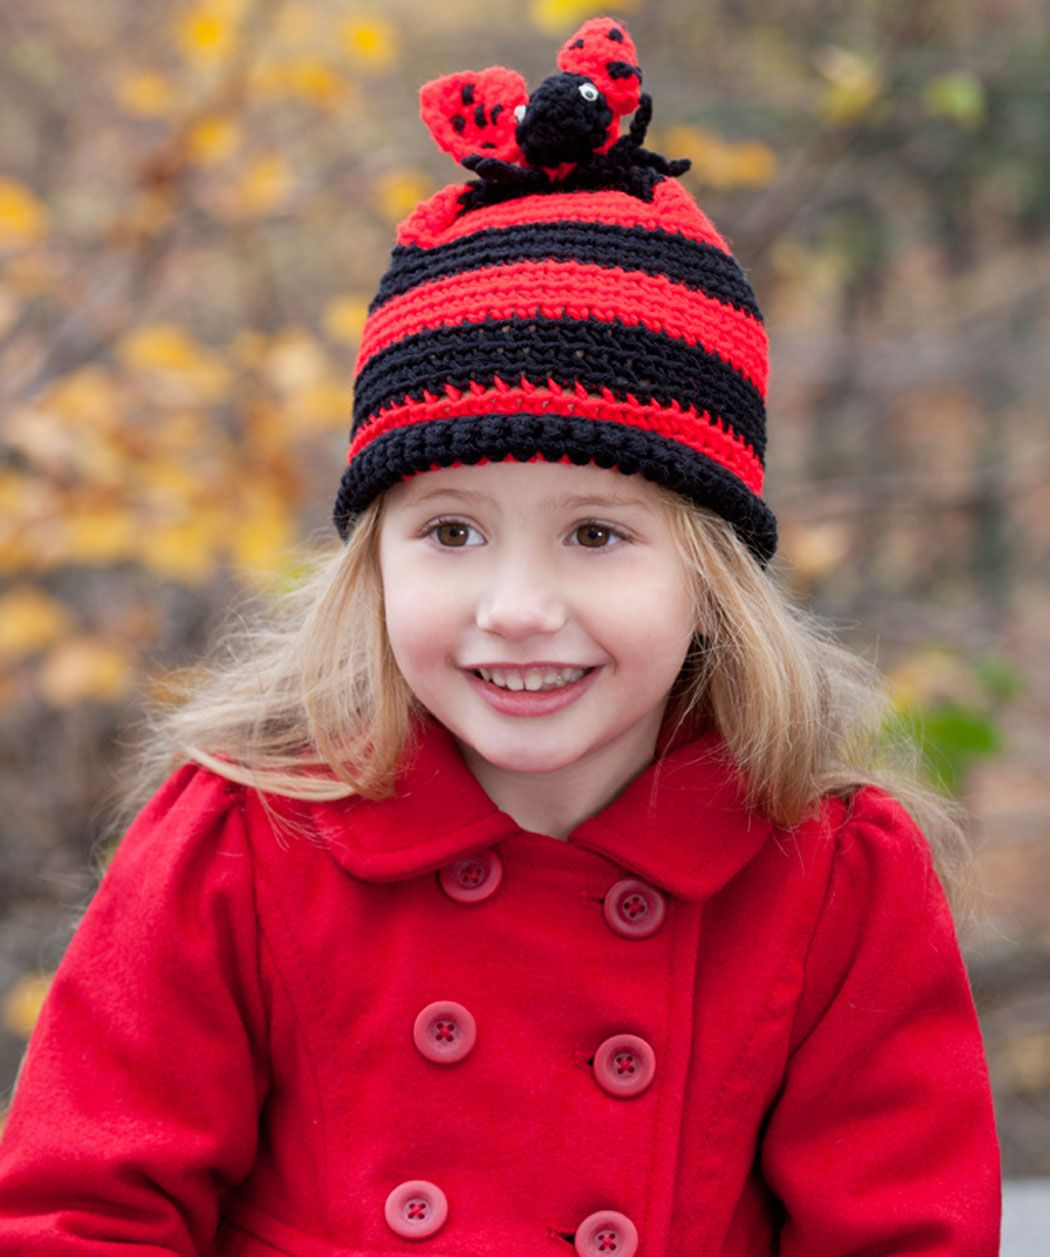 Lady bug hat crochet pattern and lady bug hat knitting pattern lady bug hat crochet pattern and lady bug hat knitting pattern red heart love bankloansurffo Image collections